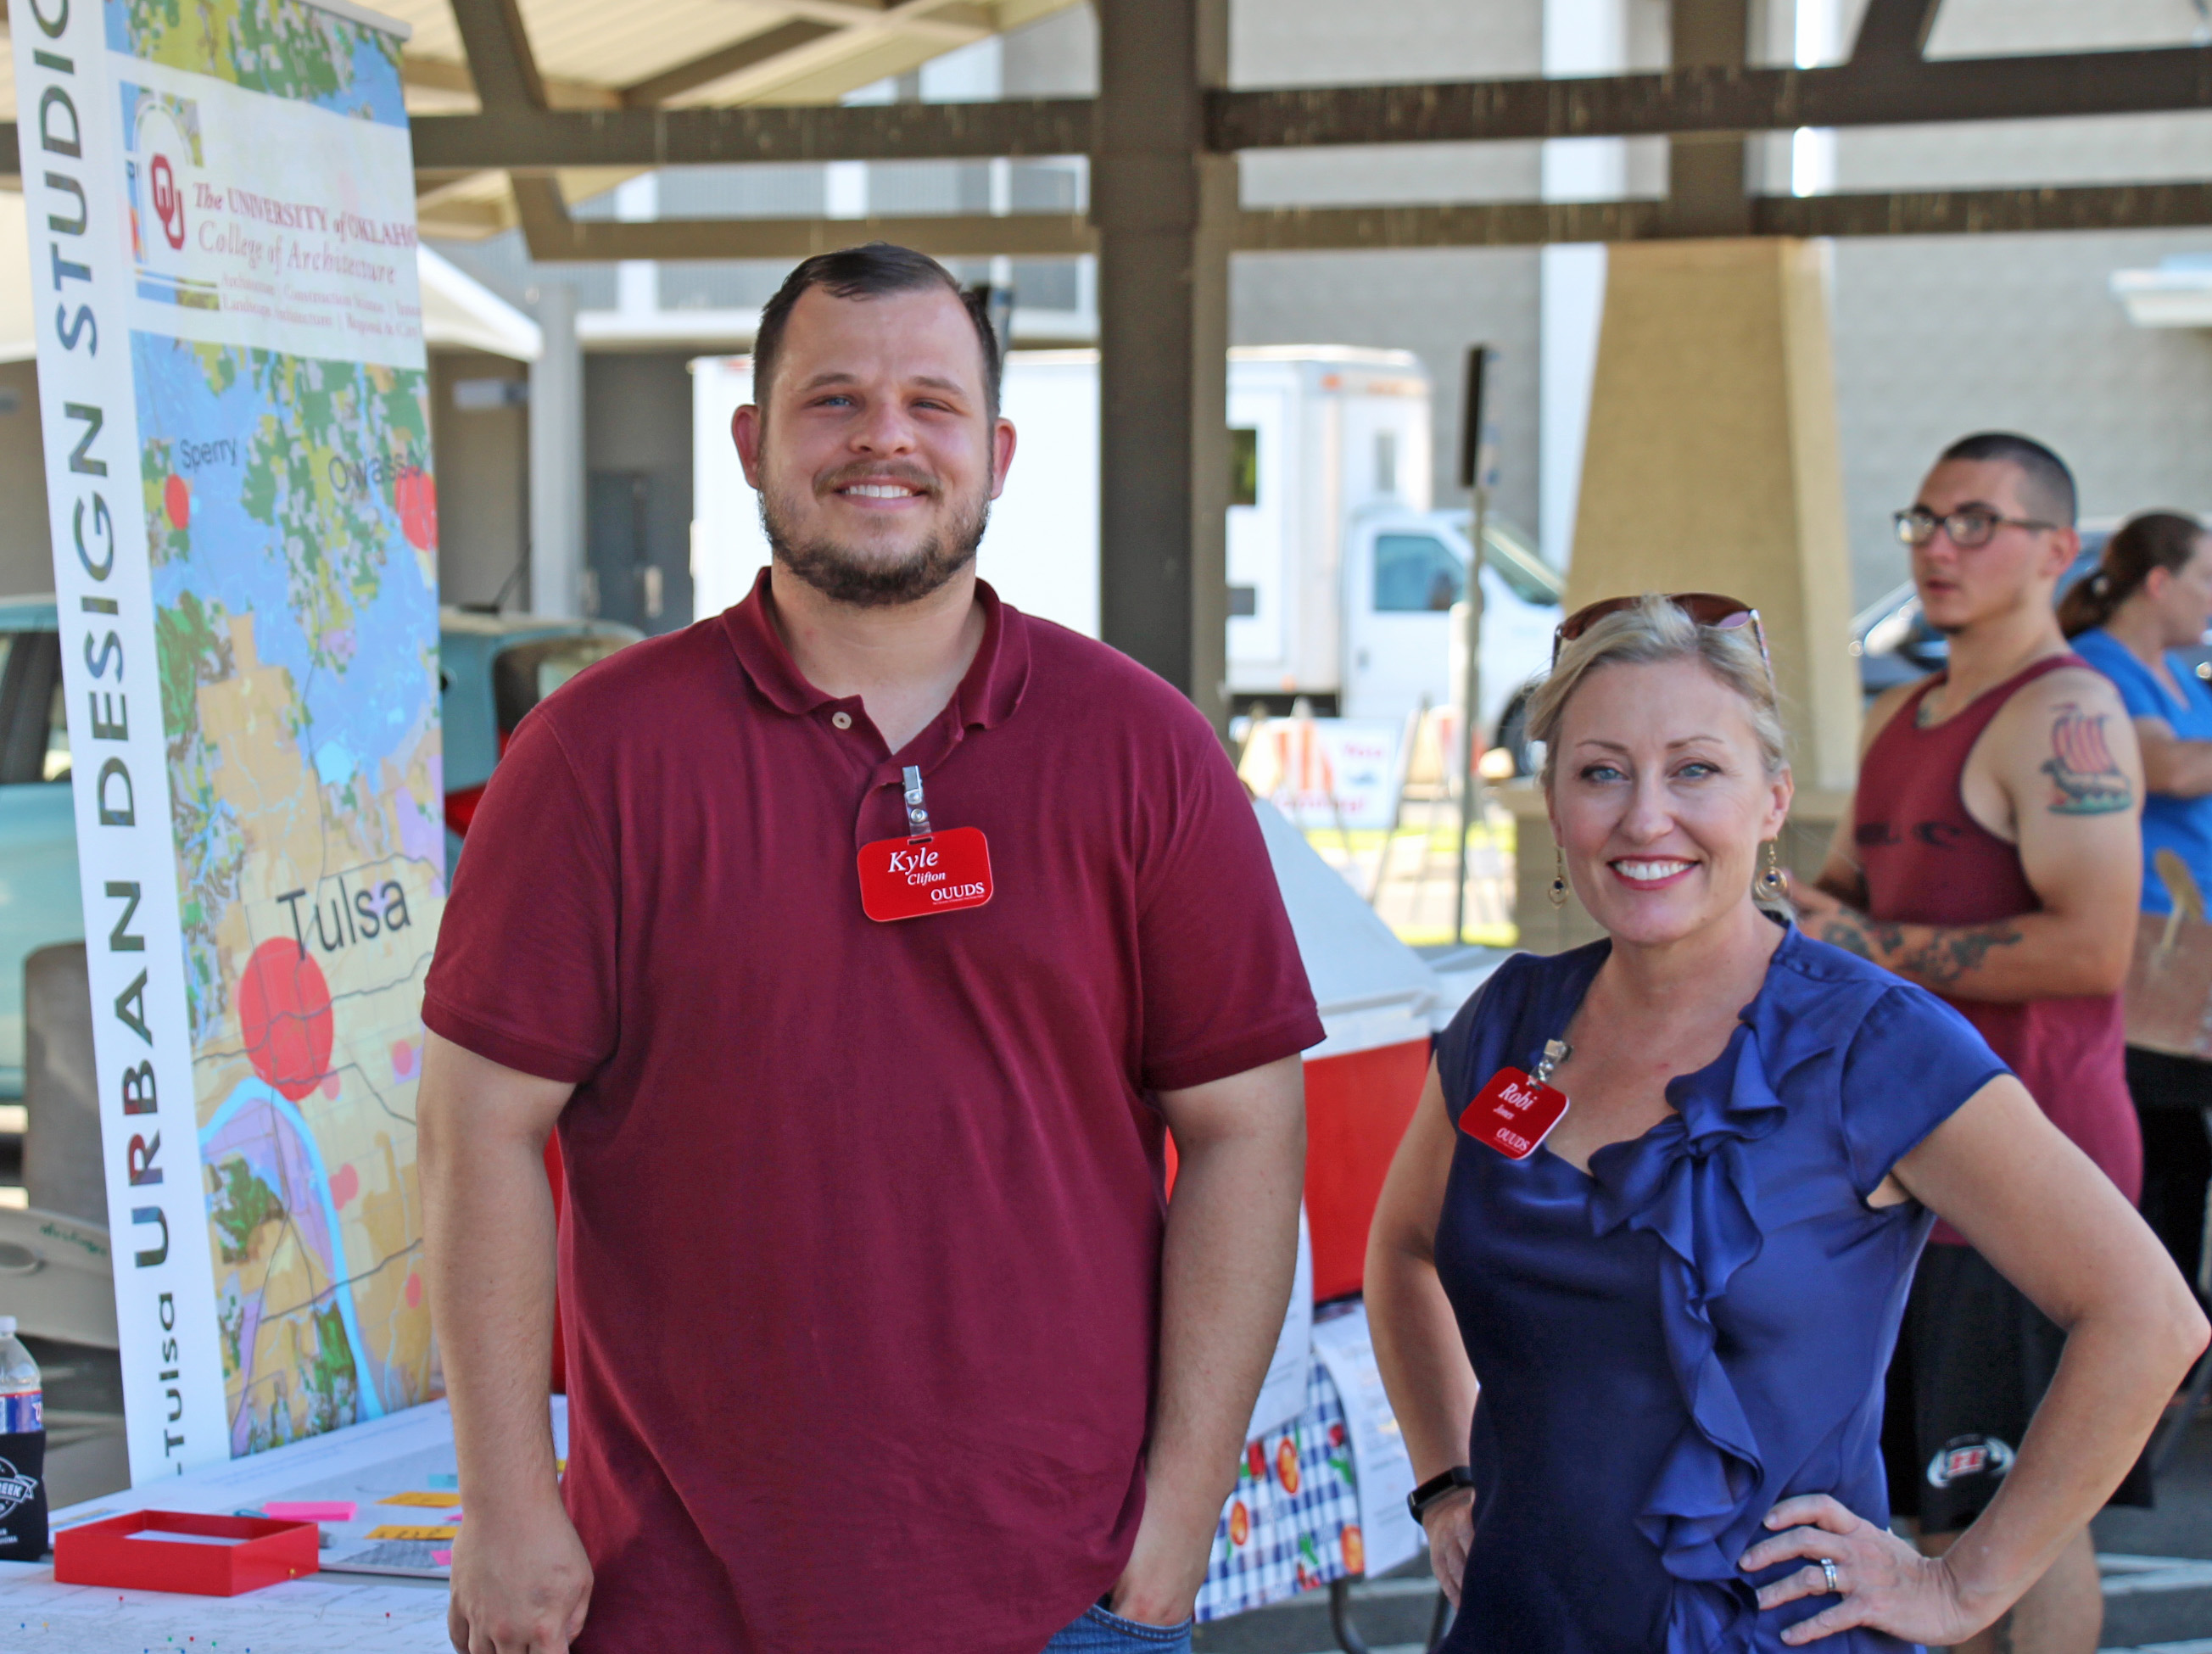 Urban Design Students Kyle Clifton and Robi Jones at the Muskogee Farmers' Market